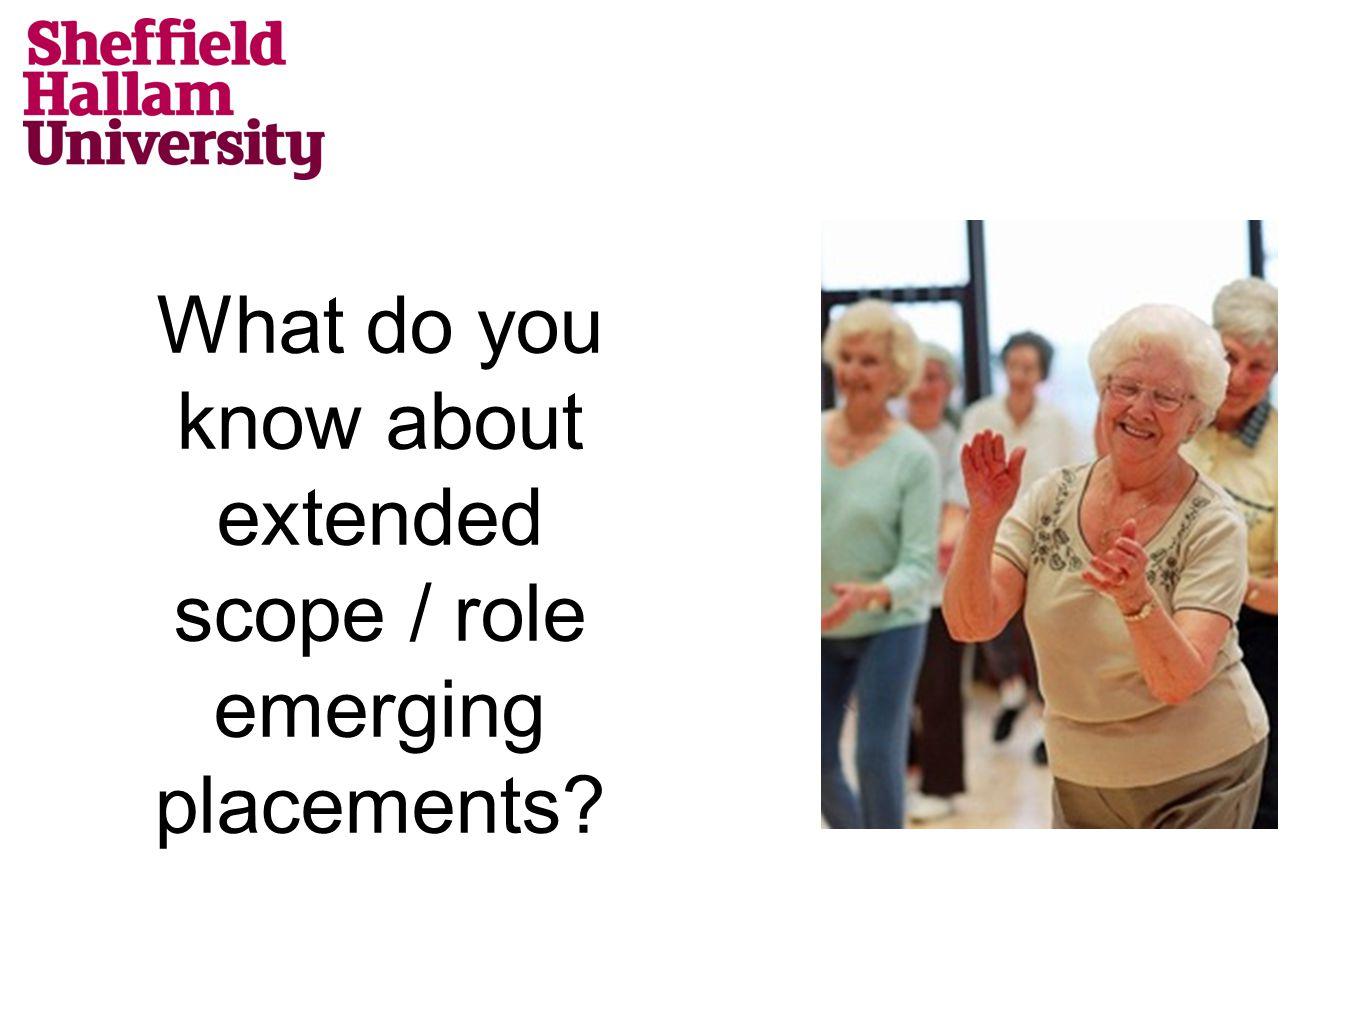 What do you know about extended scope / role emerging placements?